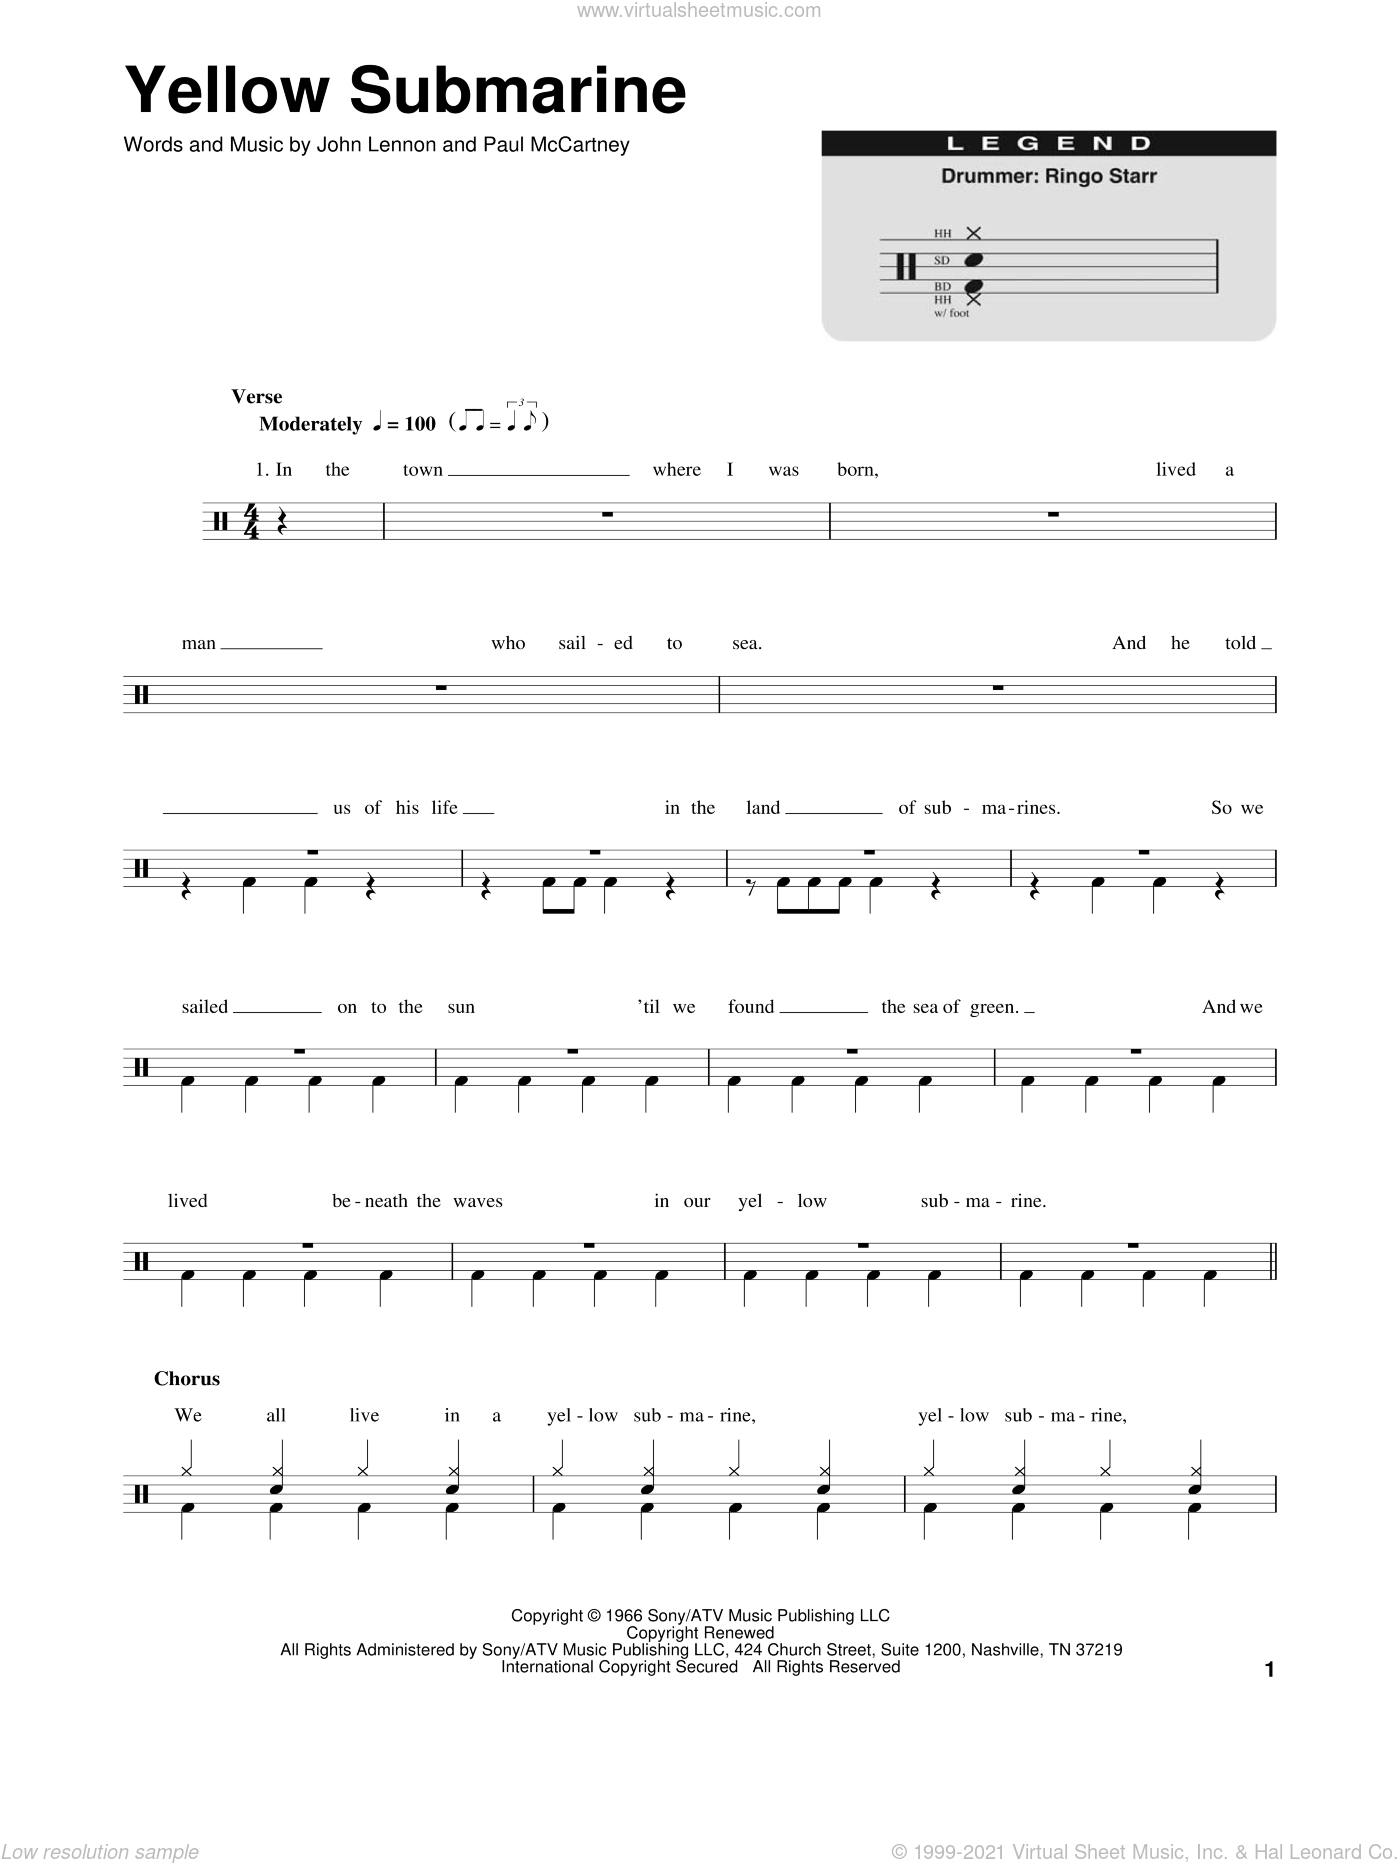 Beatles - Yellow Submarine sheet music for drums [PDF]